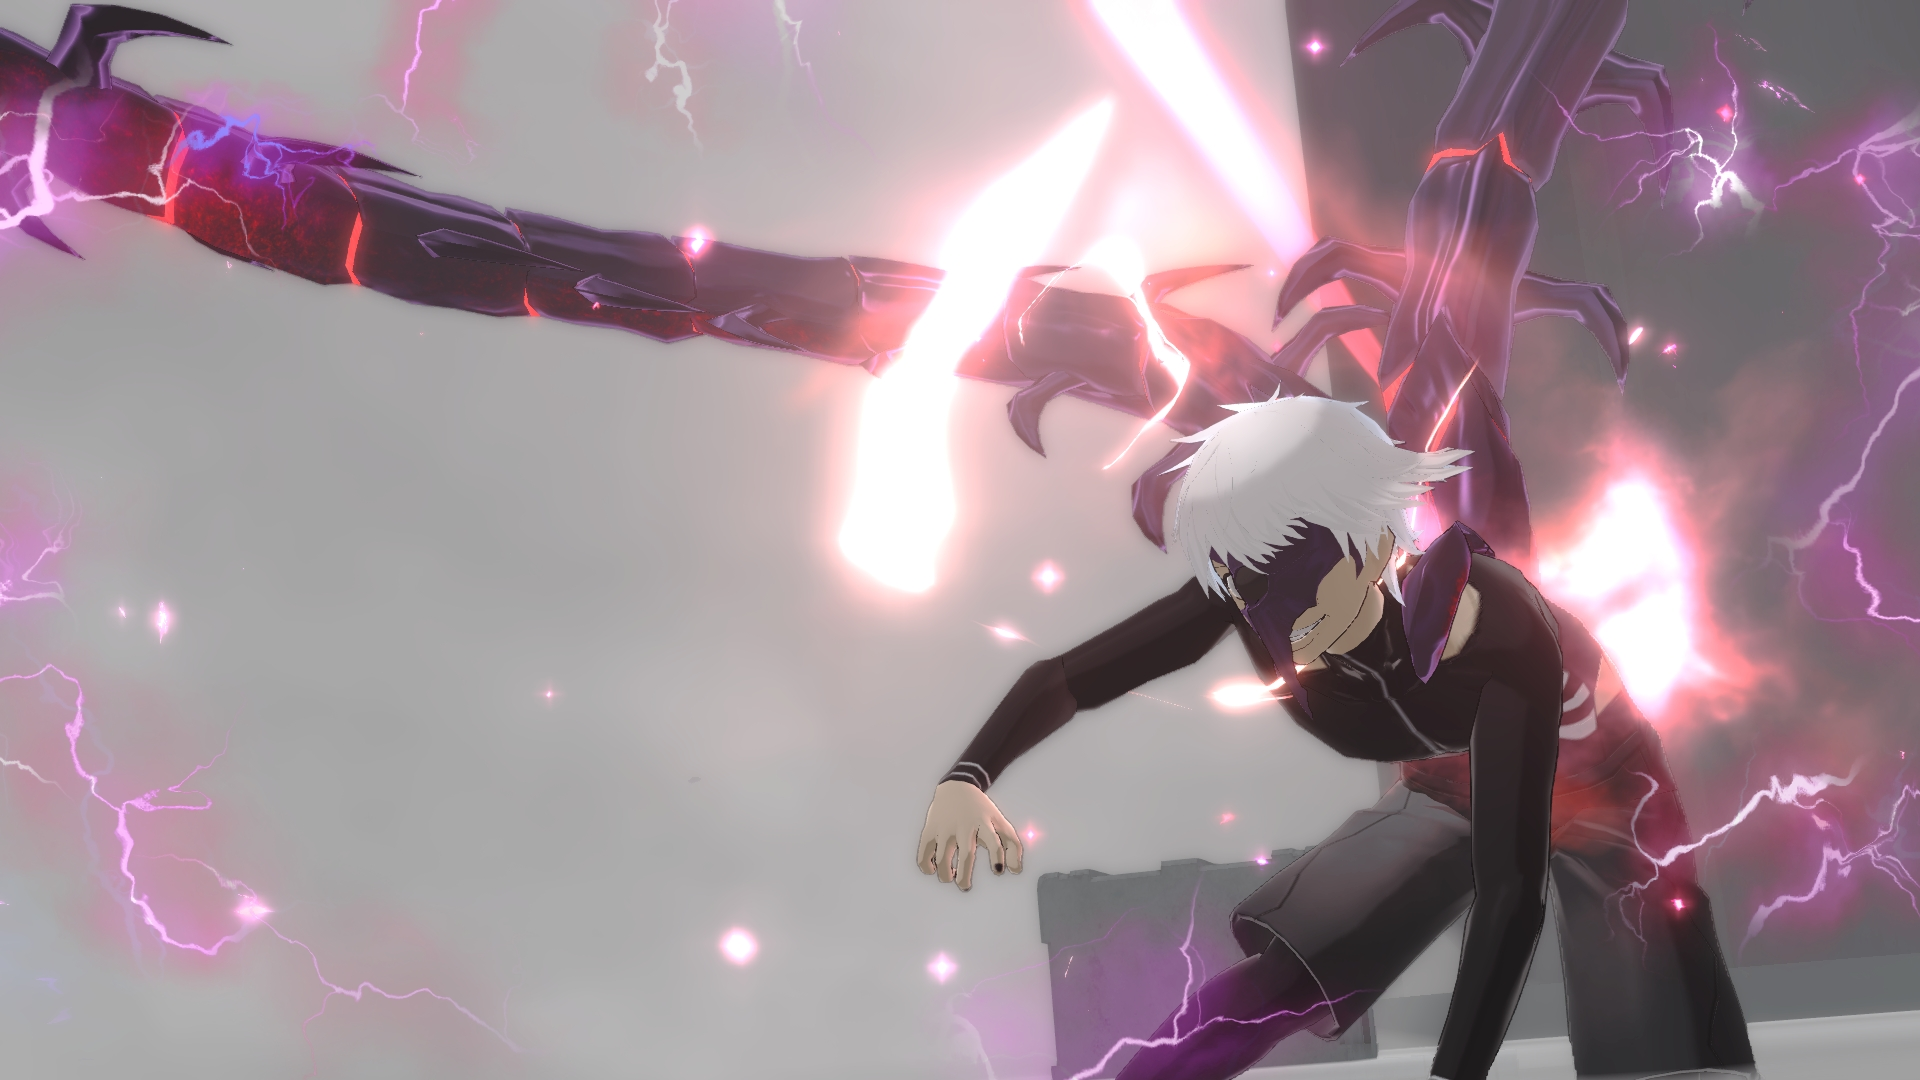 PS4《东京食尸鬼:re CALL to EXIST》11.14日发售 最新预告公布